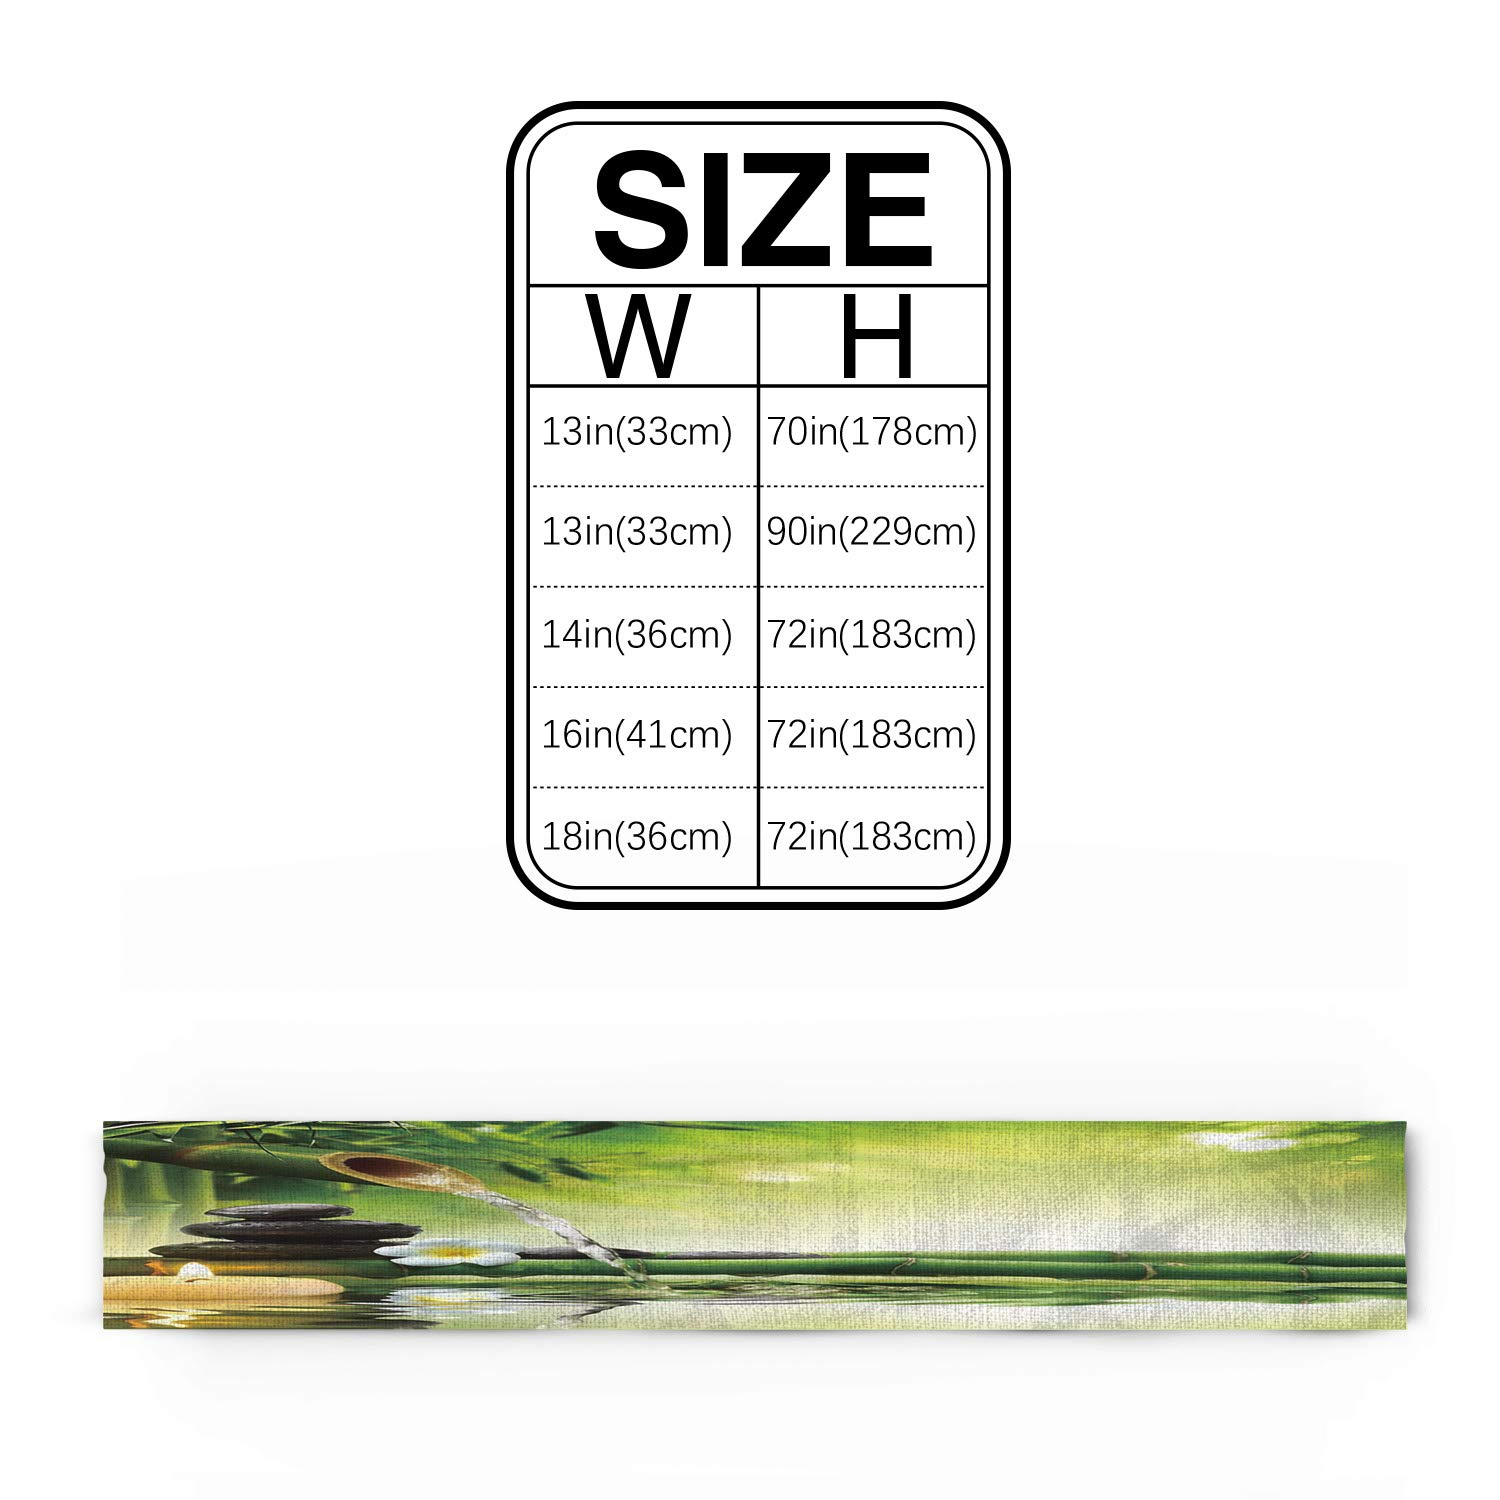 WAZZIT Spa Decor Cotton Table Runner - Perfect for Summer Holiday Parties and Everyday Use 14x72inch, Zen Garden Theme Jasmine Flower Bamboos by WAZZIT (Image #3)